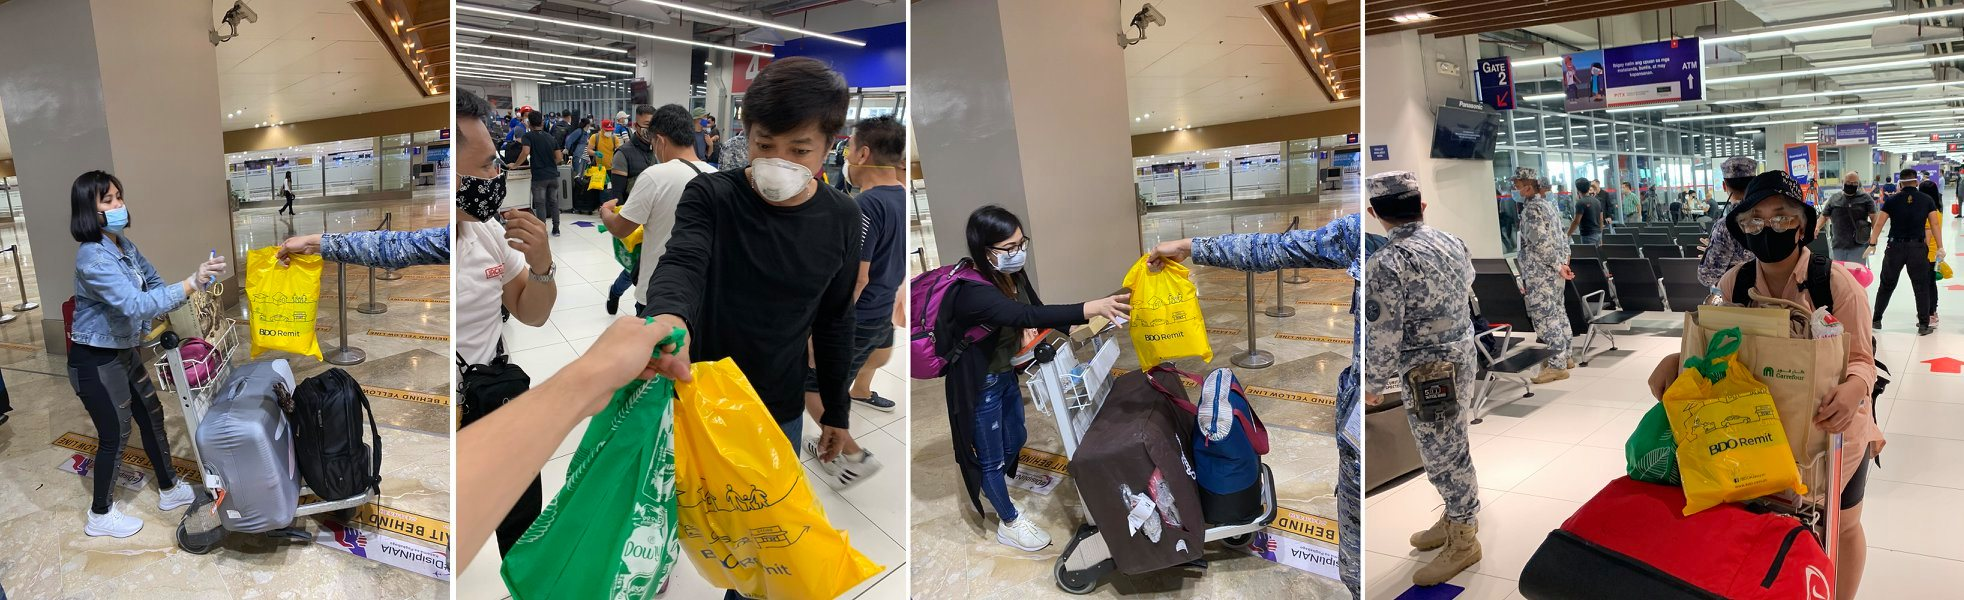 BDO Remit Helps in the Distribution of Hygiene Kits to Repatriated OFWs